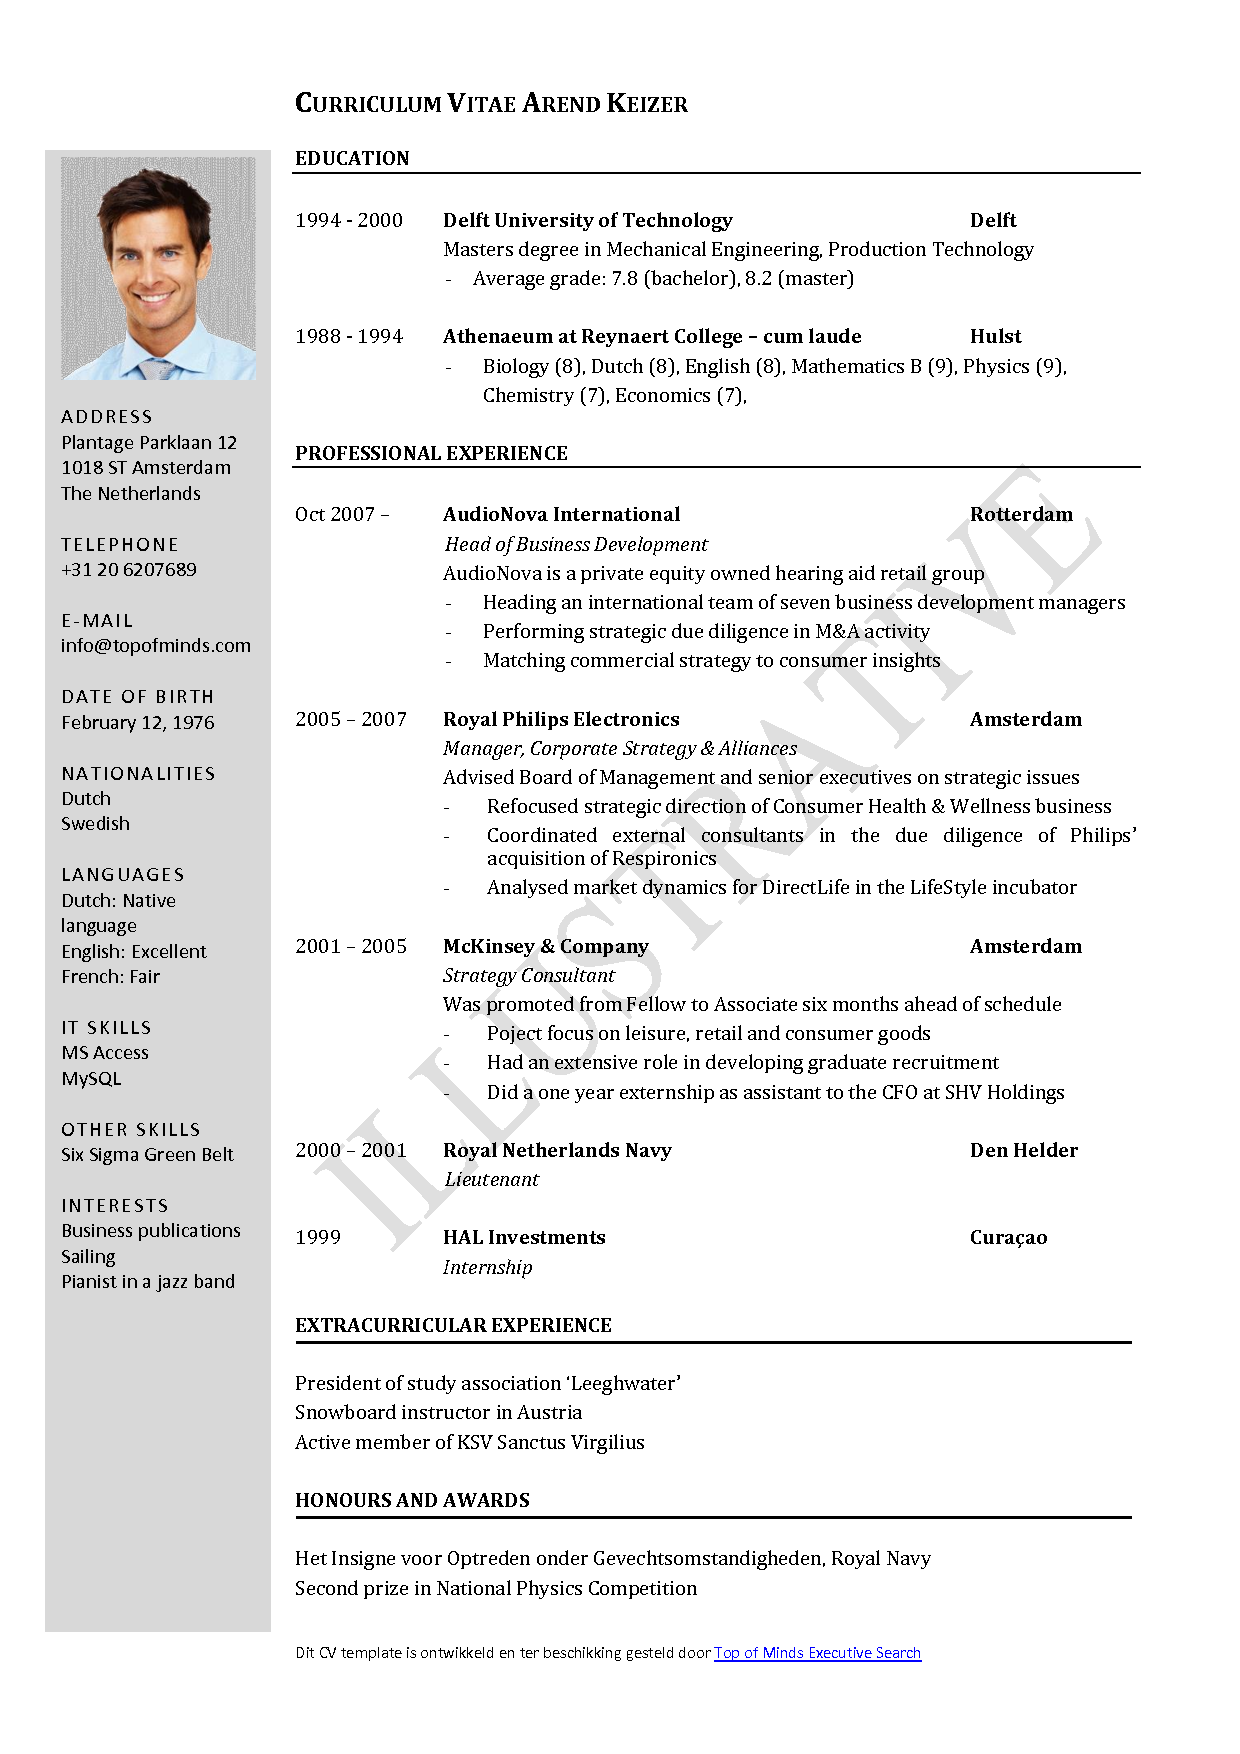 free curriculum vitae template word download cv template - Free Resume Templates For Word 2007